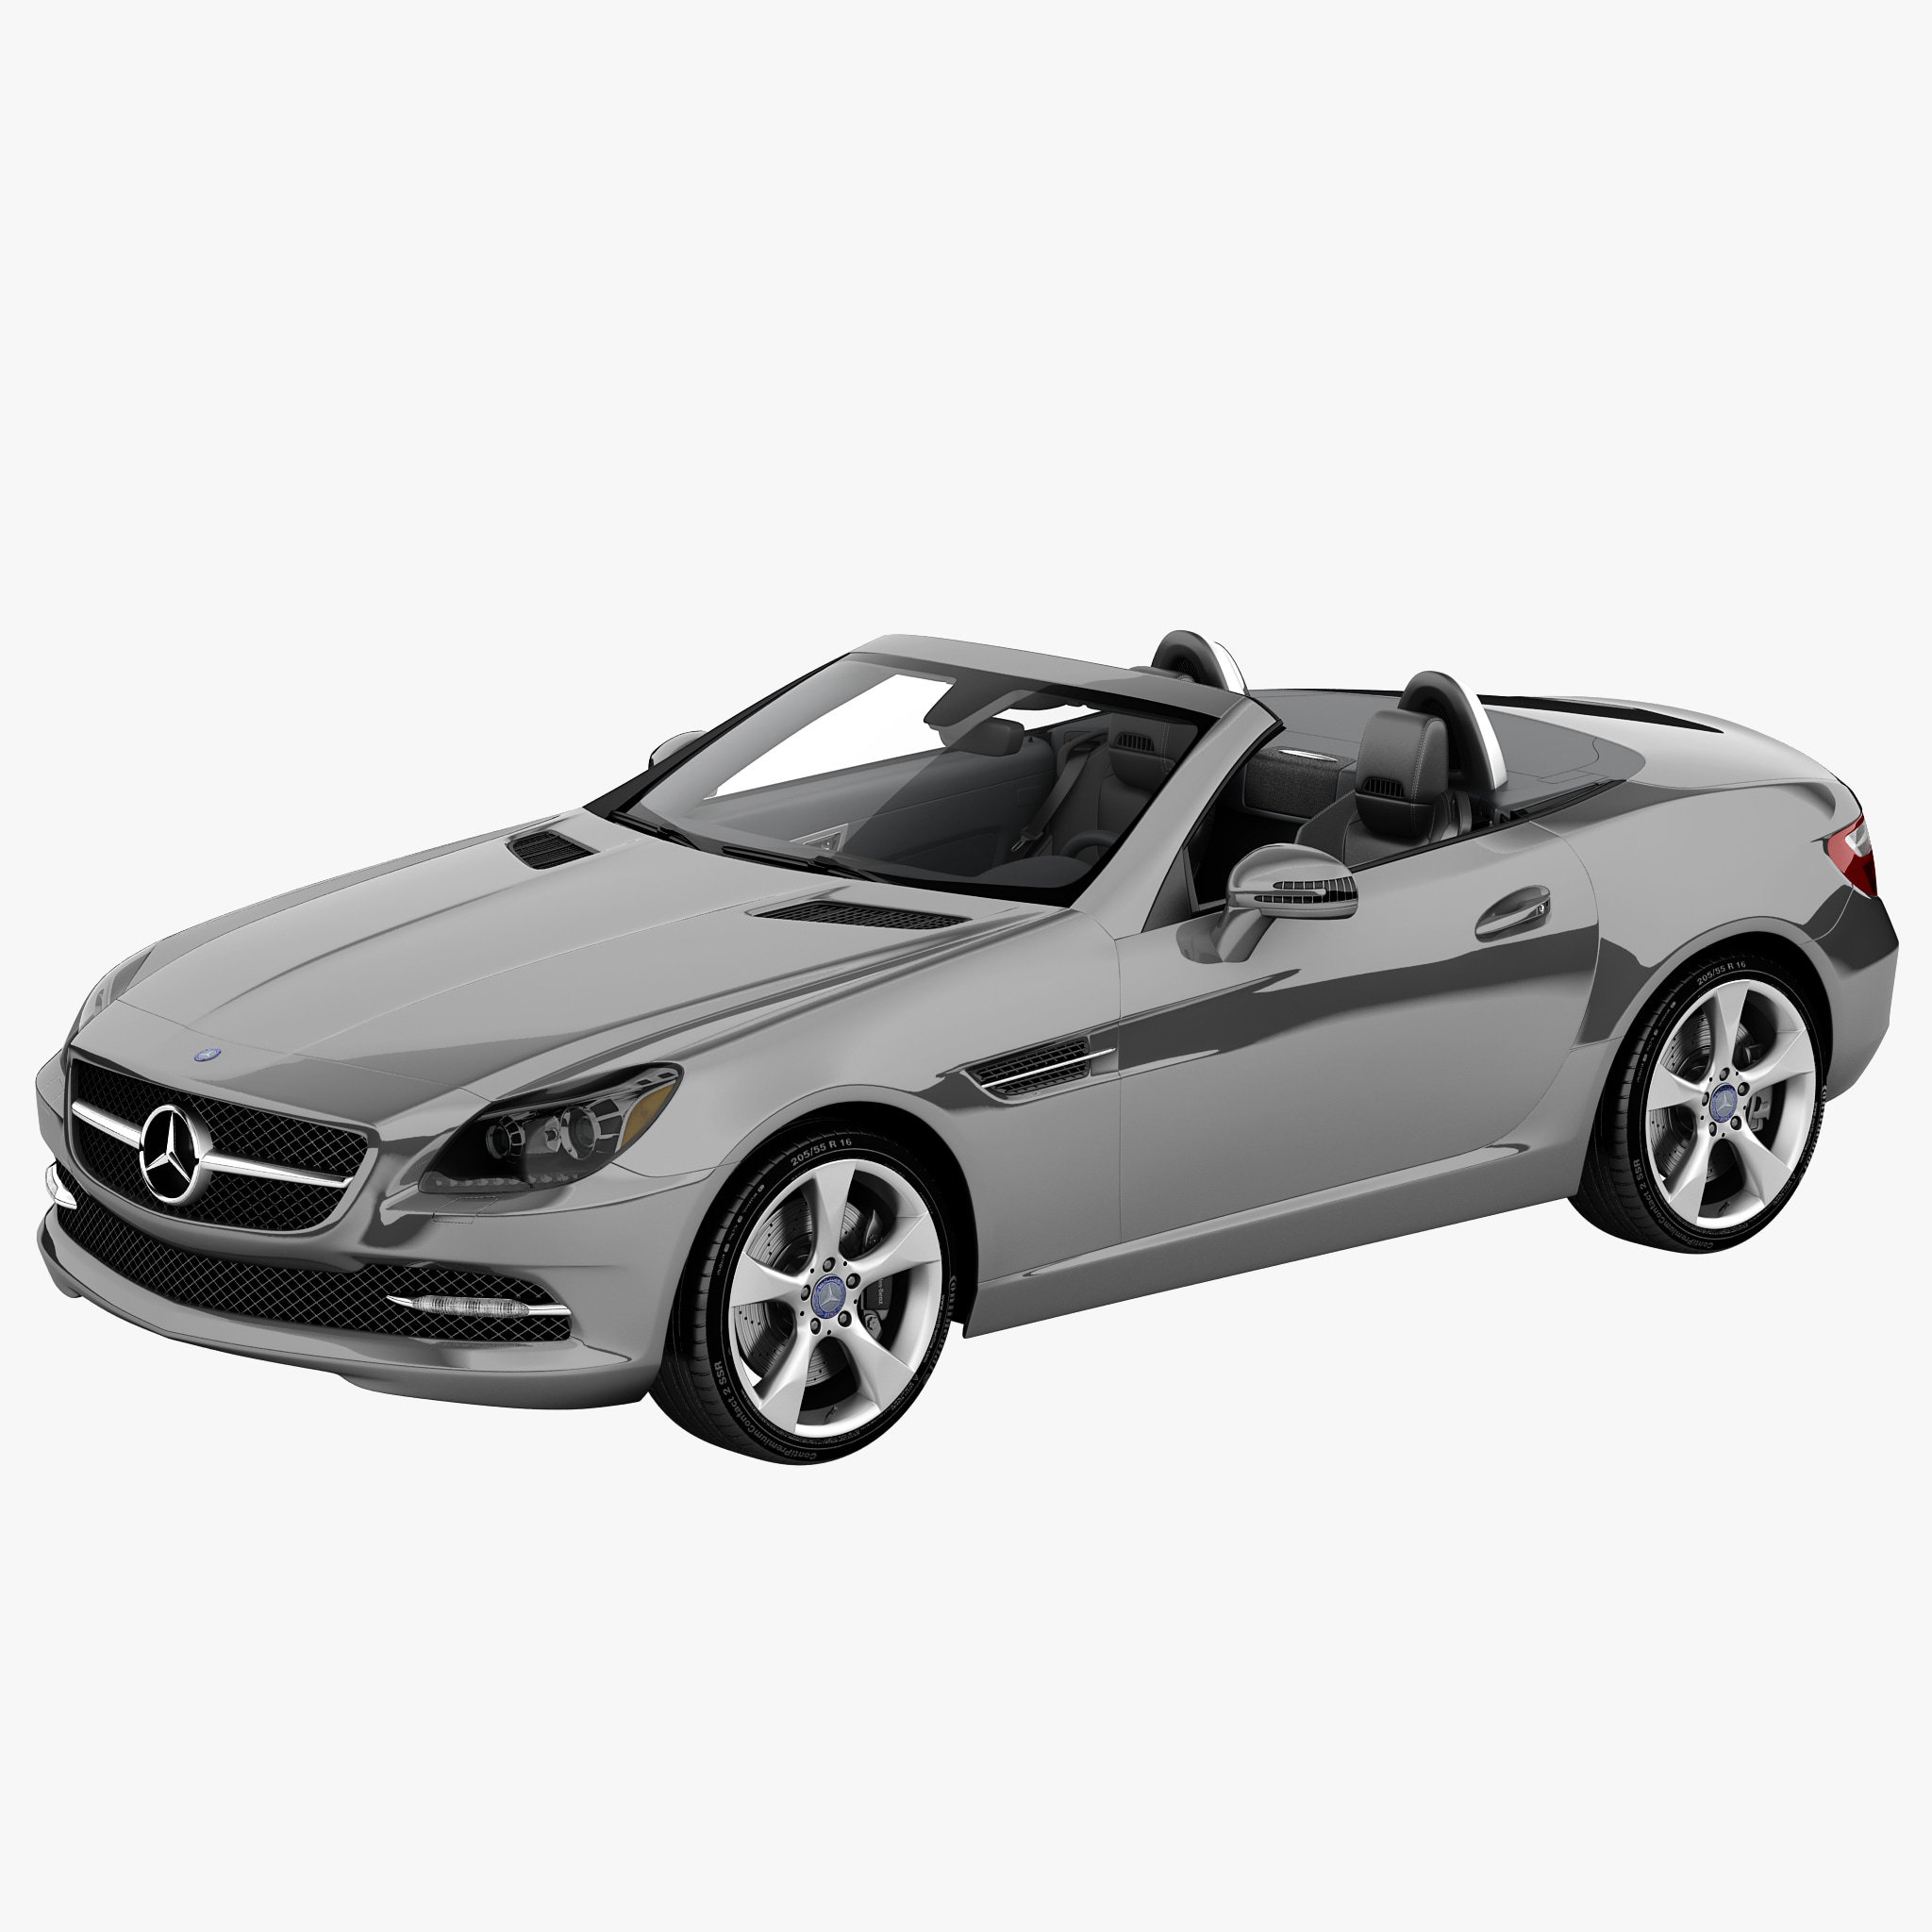 Mercedes Benz SLK Roadster 2013_1.jpg